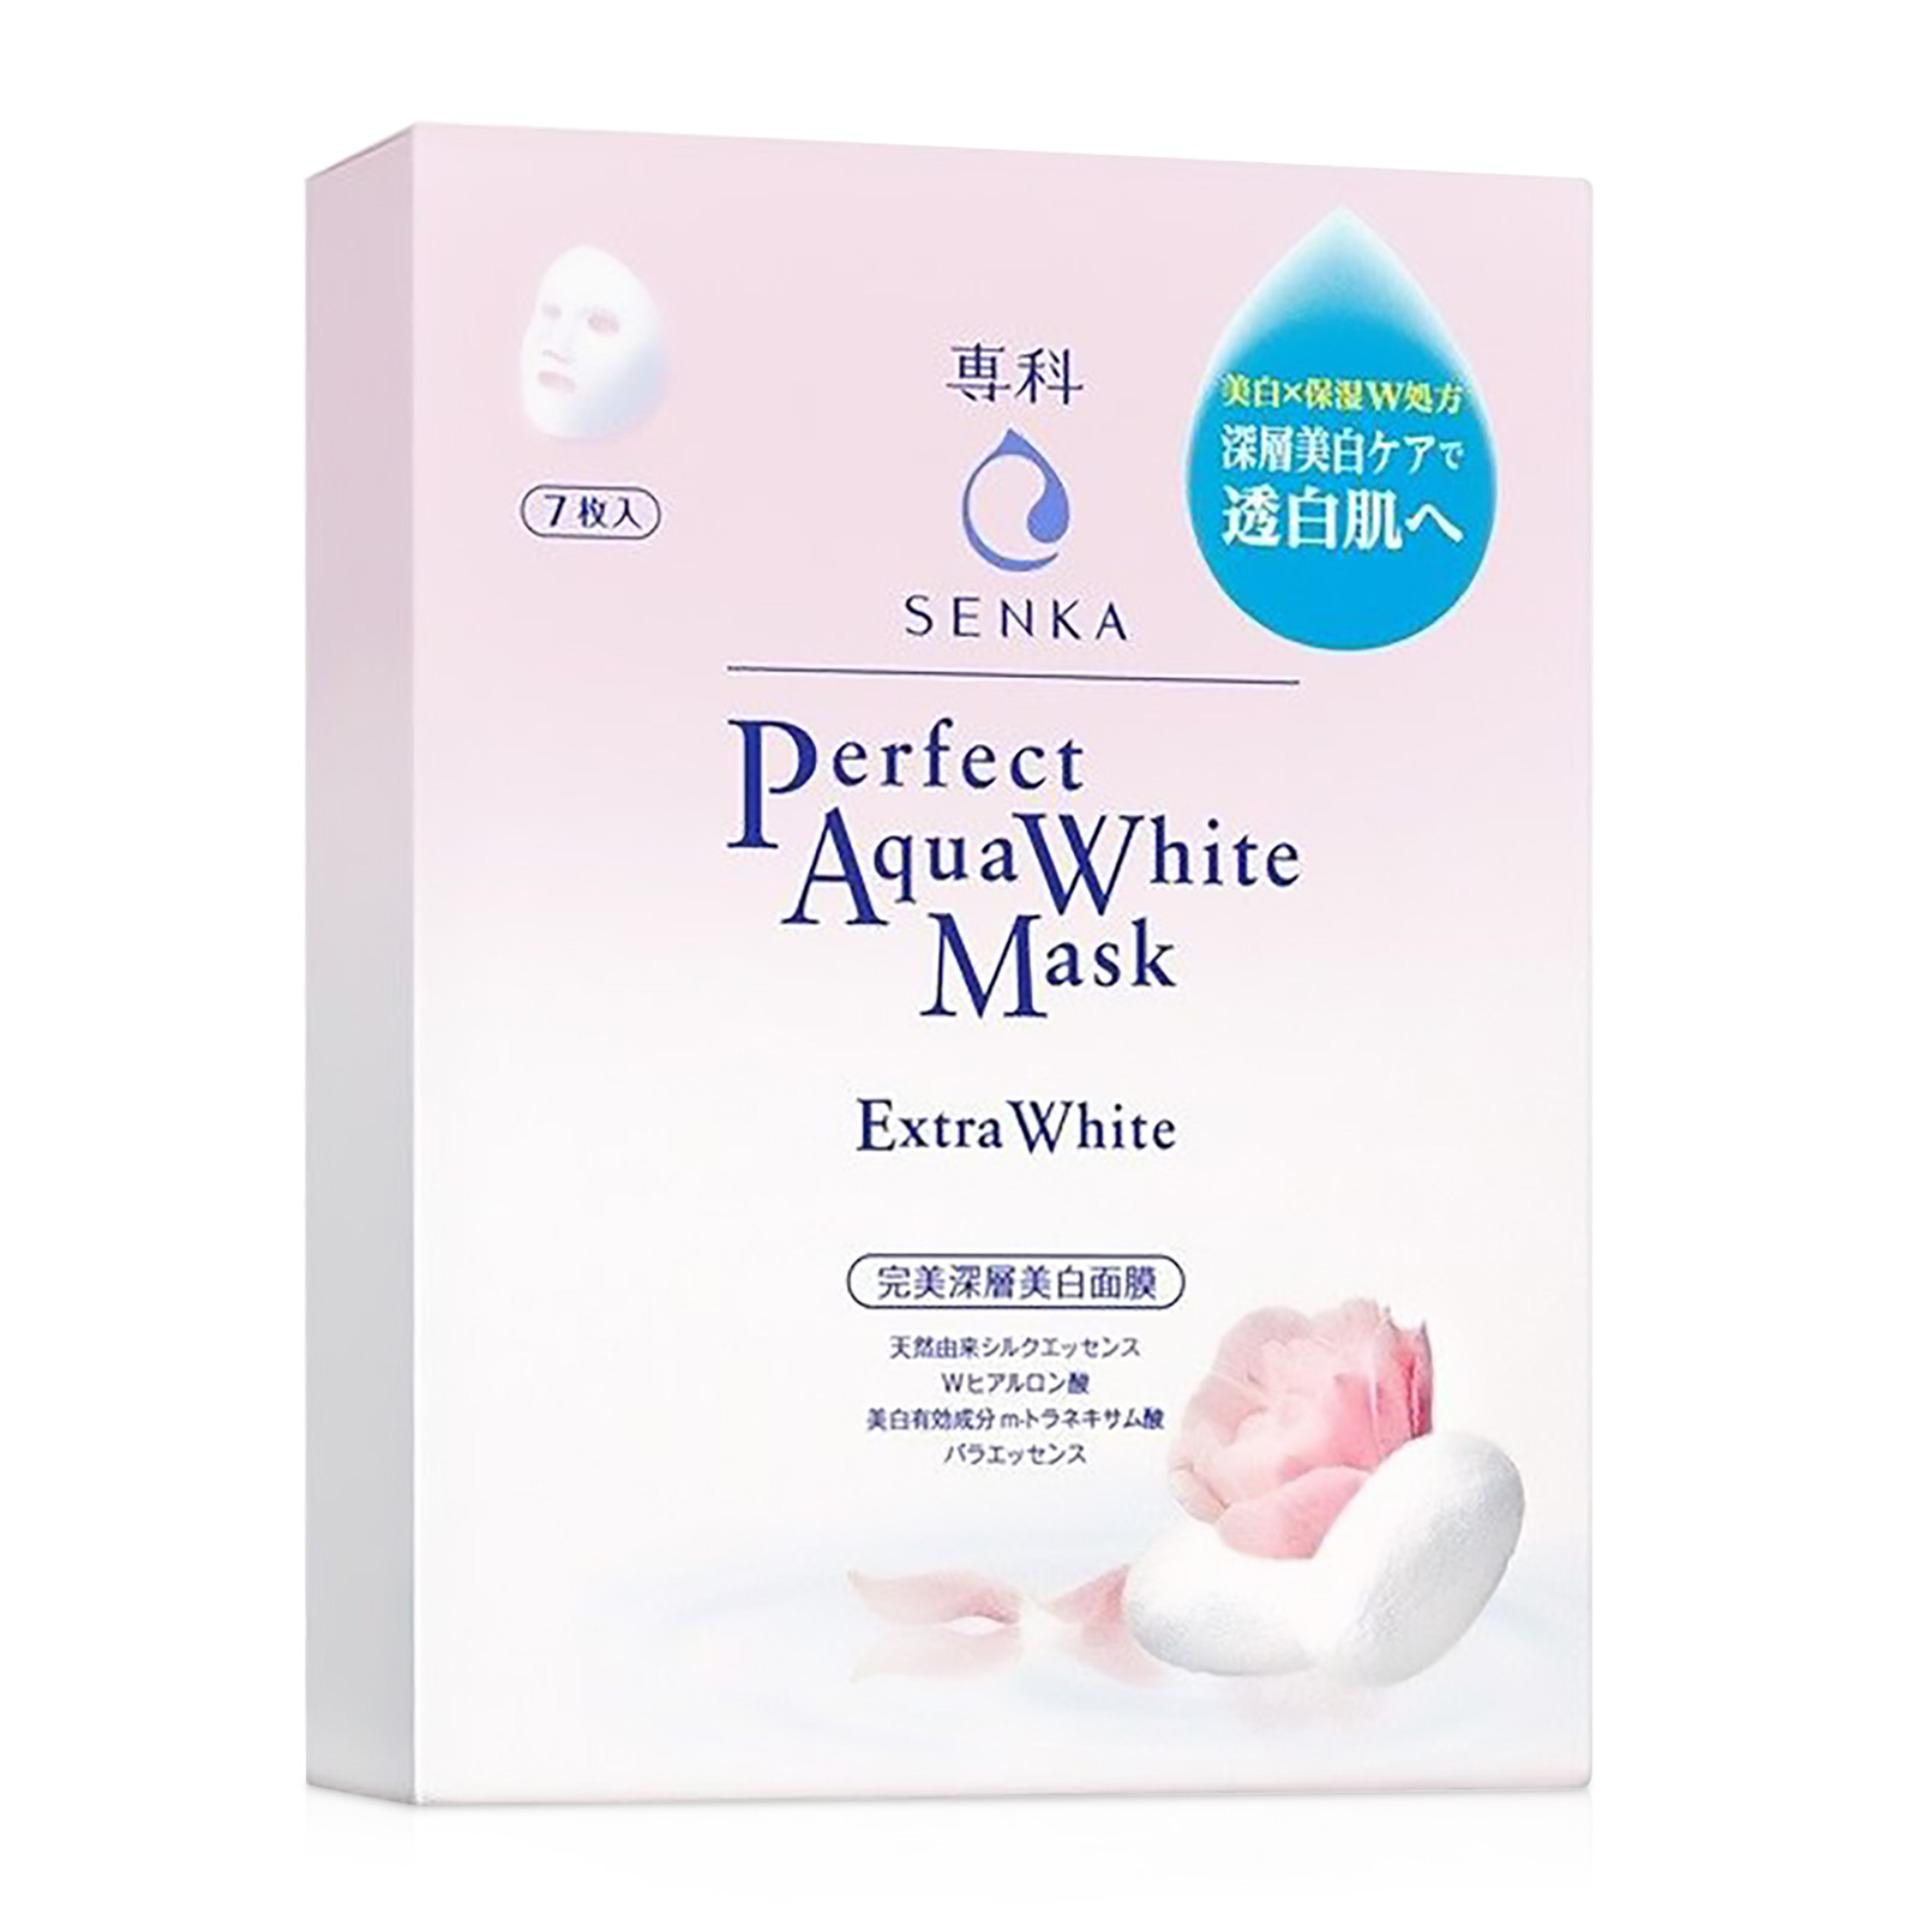 Senka Aqua White Mask Extra White 7P Box Price